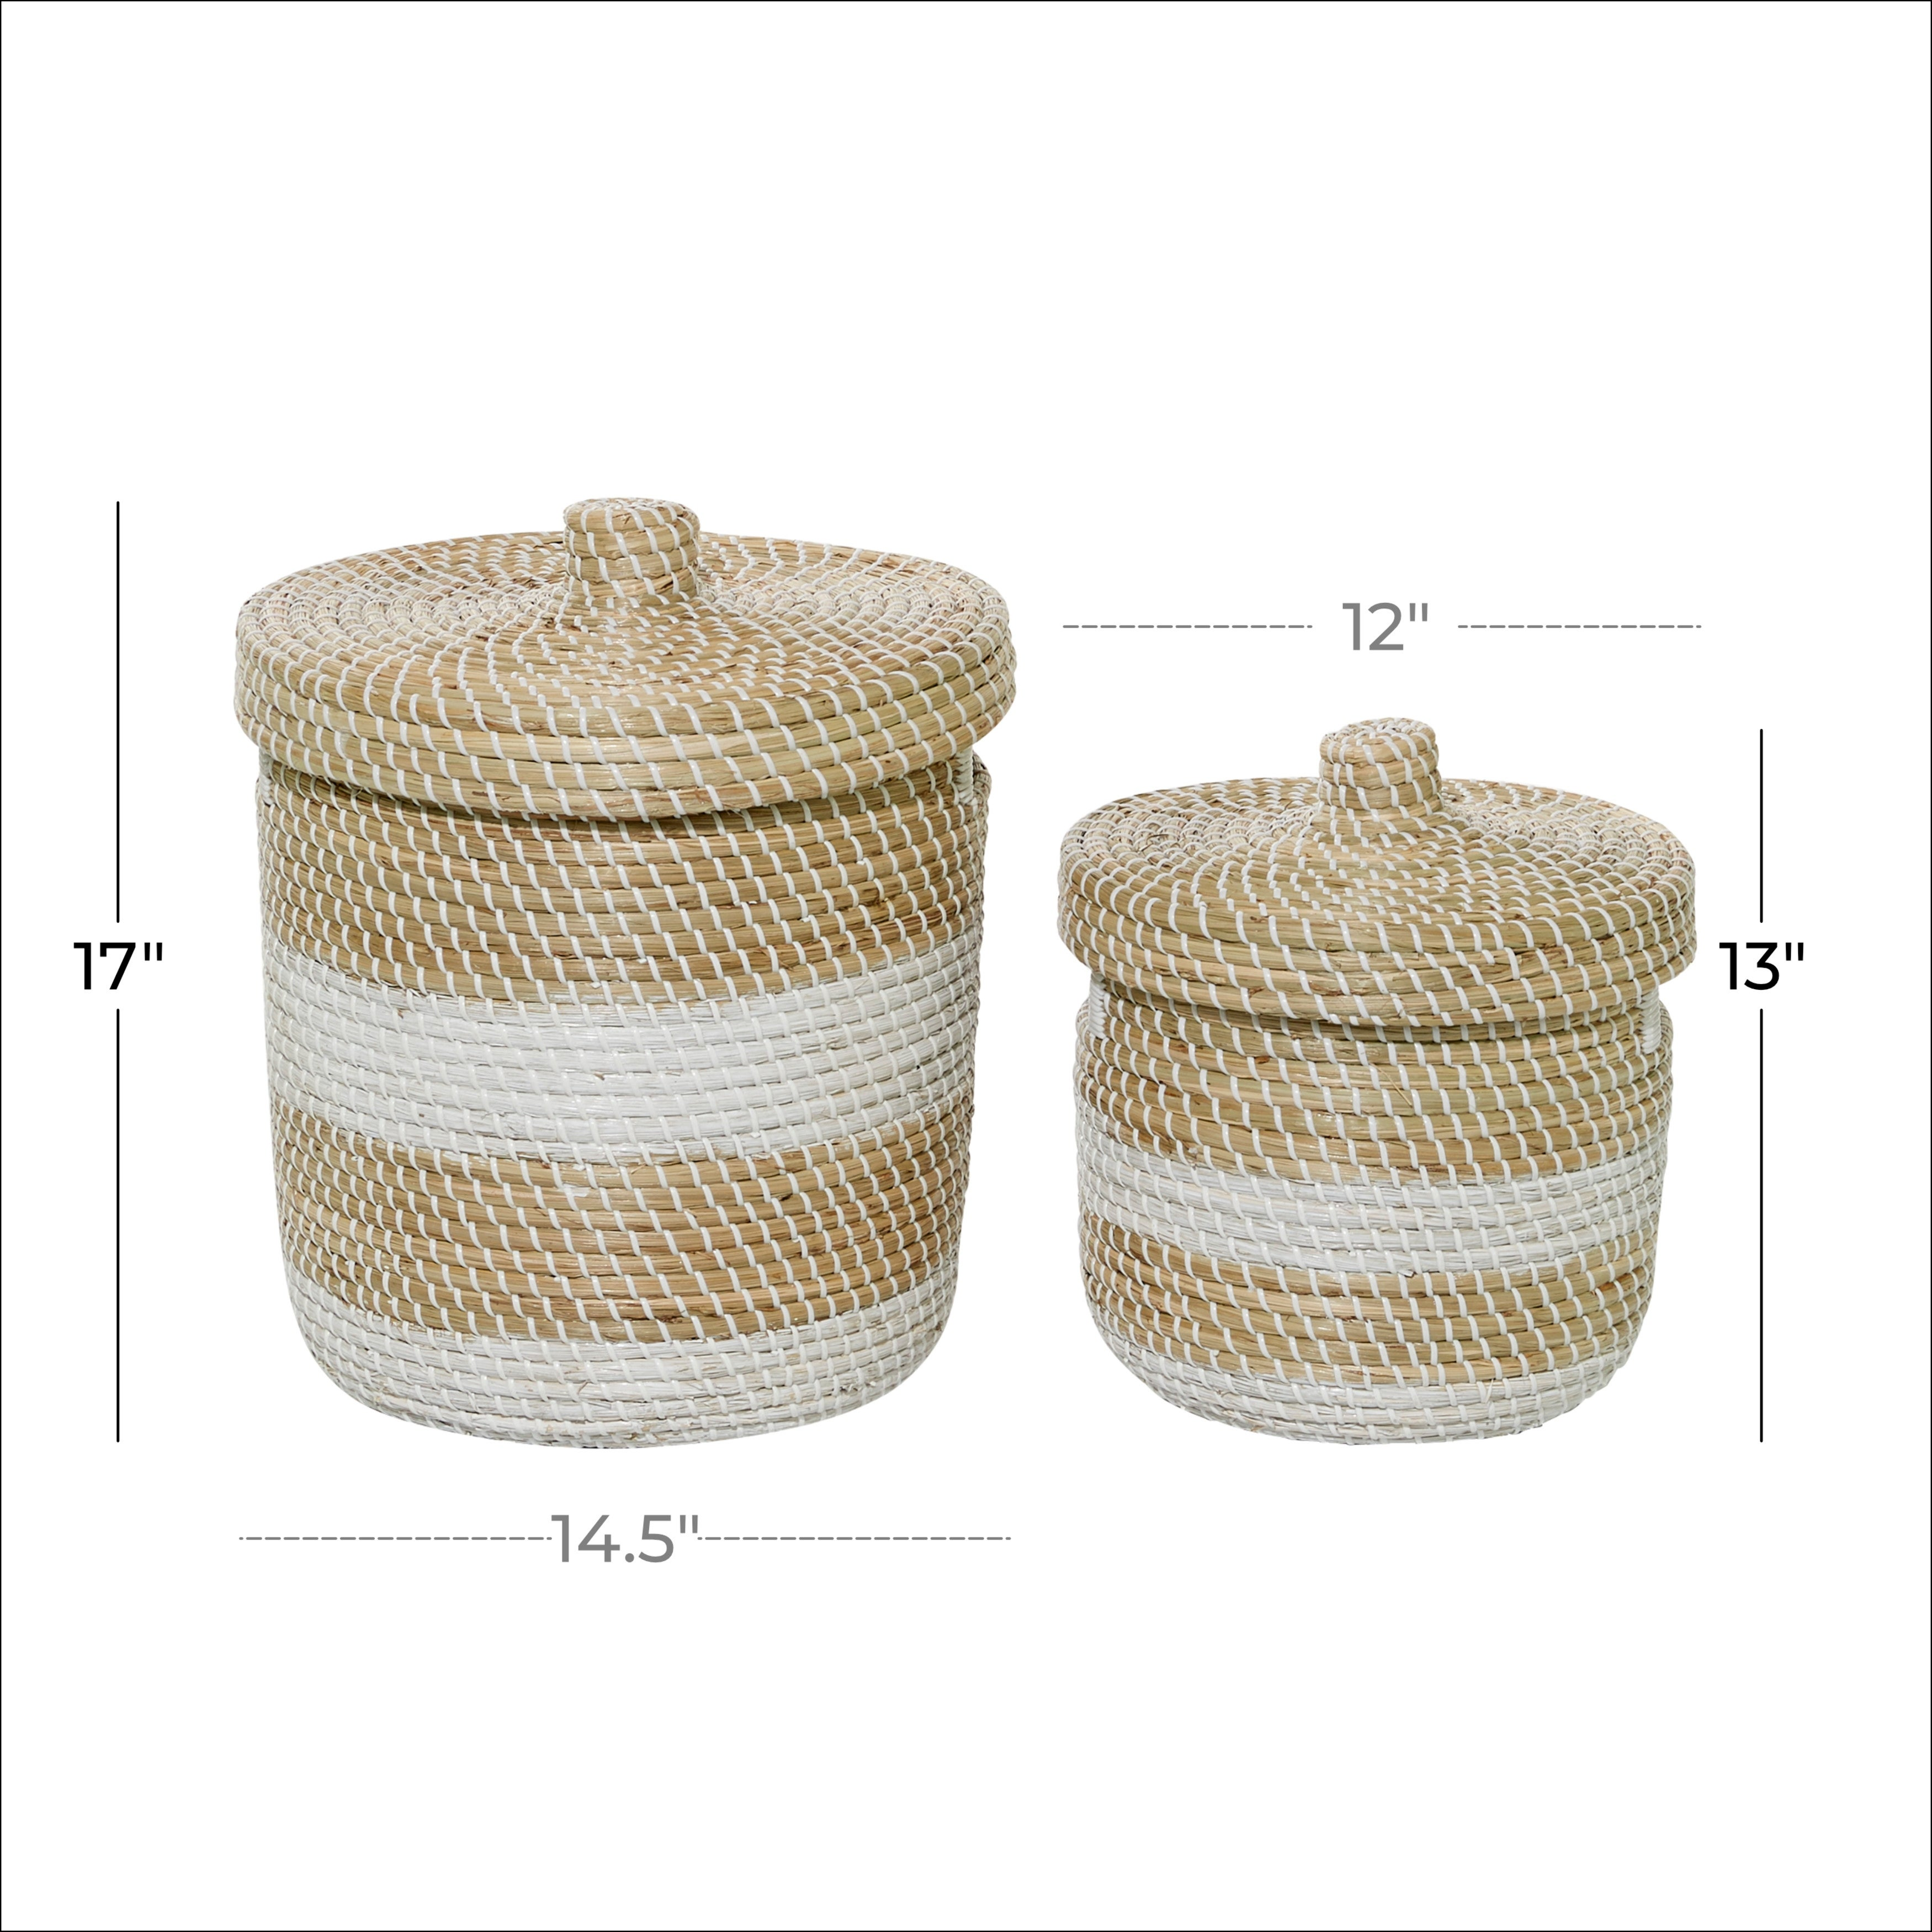 Woven Striped Round Seagrass Basket With Lid Set Of 2 13 17 15 X 15 X 17round Overstock 32123649